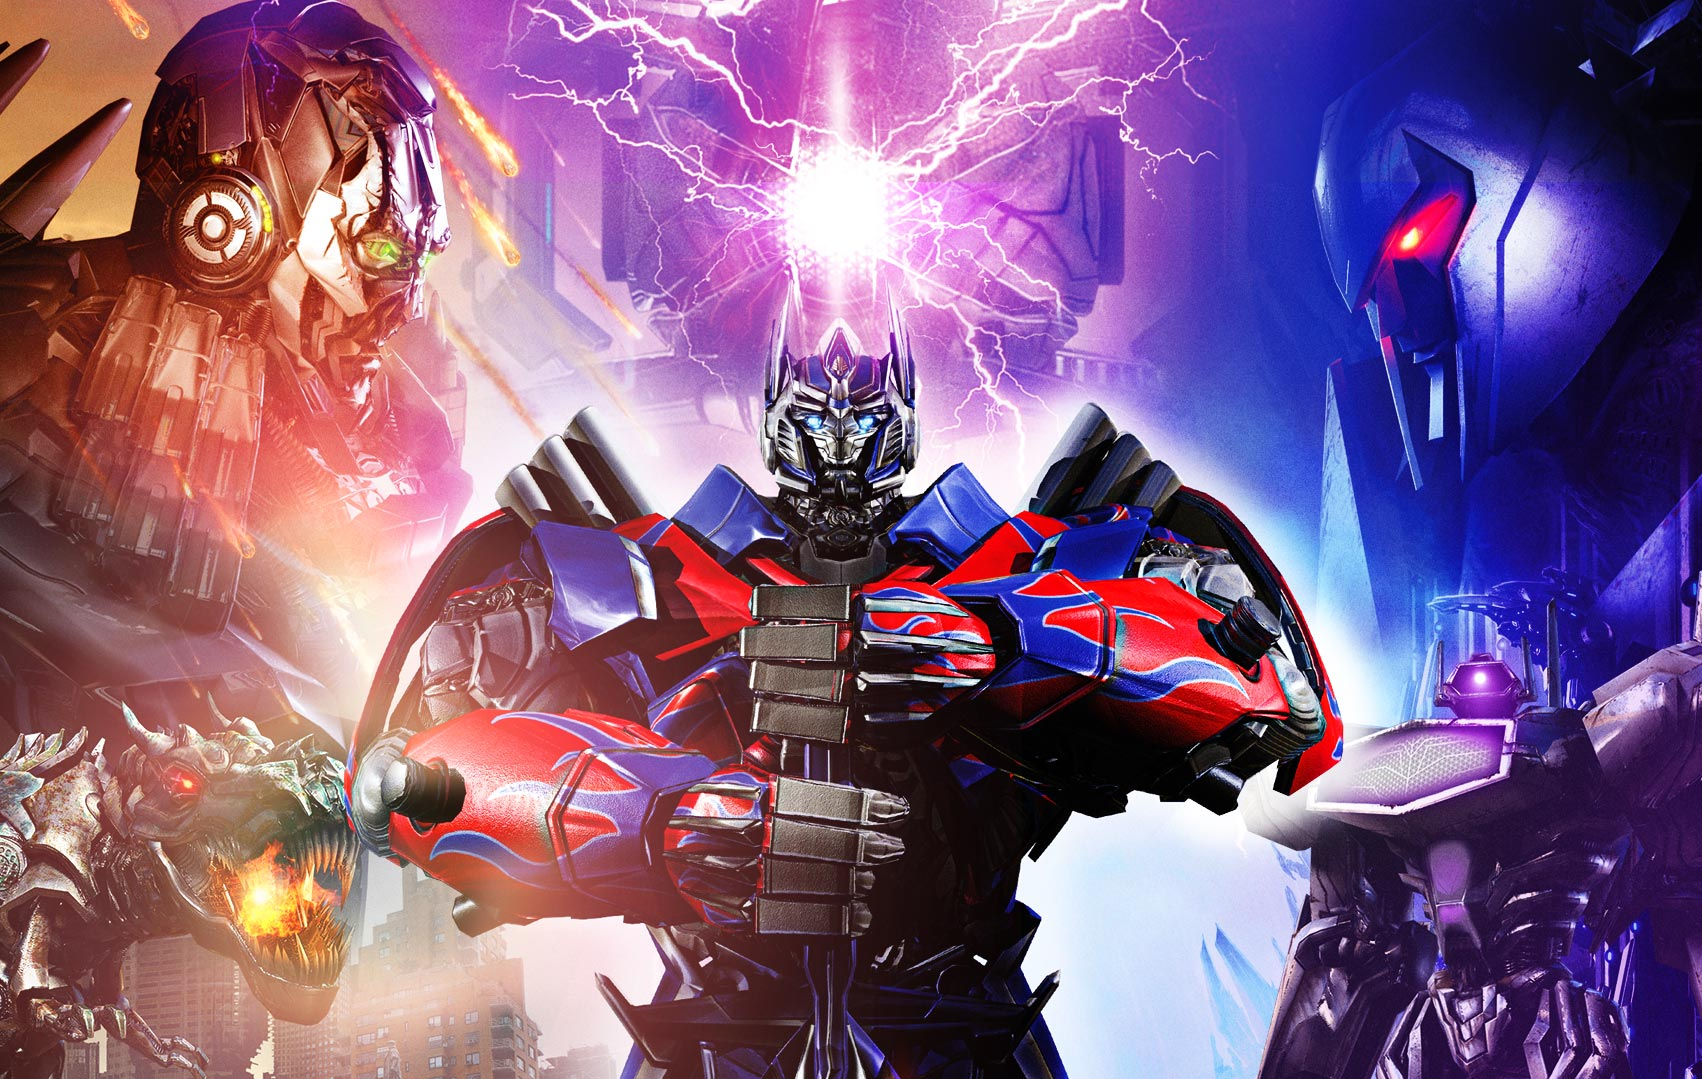 Арт к игре Transformers: Rise of the Dark Spark